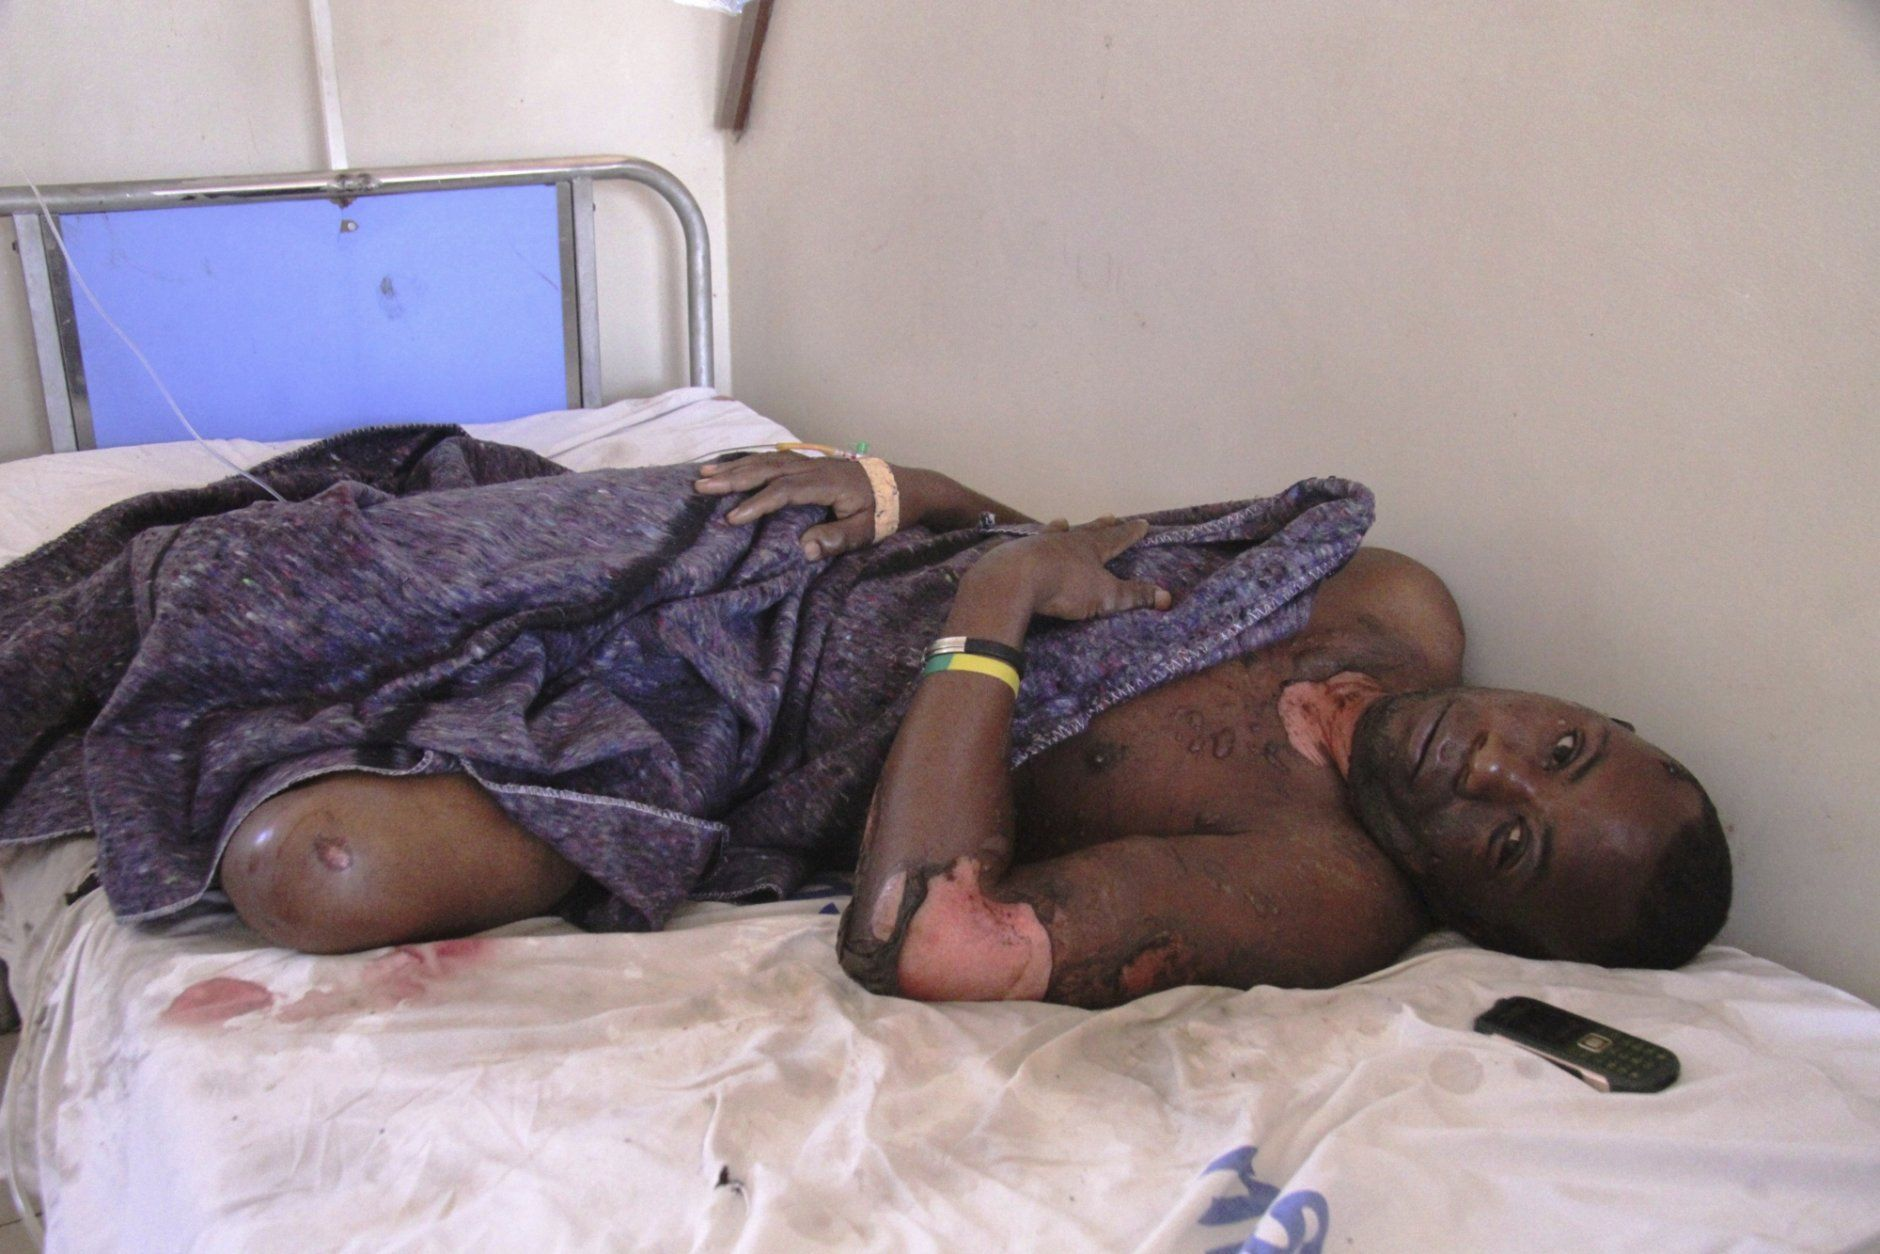 An injured person in hospital after a patrol tanker exploded, Saturday, Aug. 10 2019, in Morogoro, Tanzania.  A damaged tanker truck exploded in eastern Tanzania Saturday as people were trying to siphon fuel out of it, killing at least 62, in one of the worst incidents of its kind in the East African country. (AP Photo)